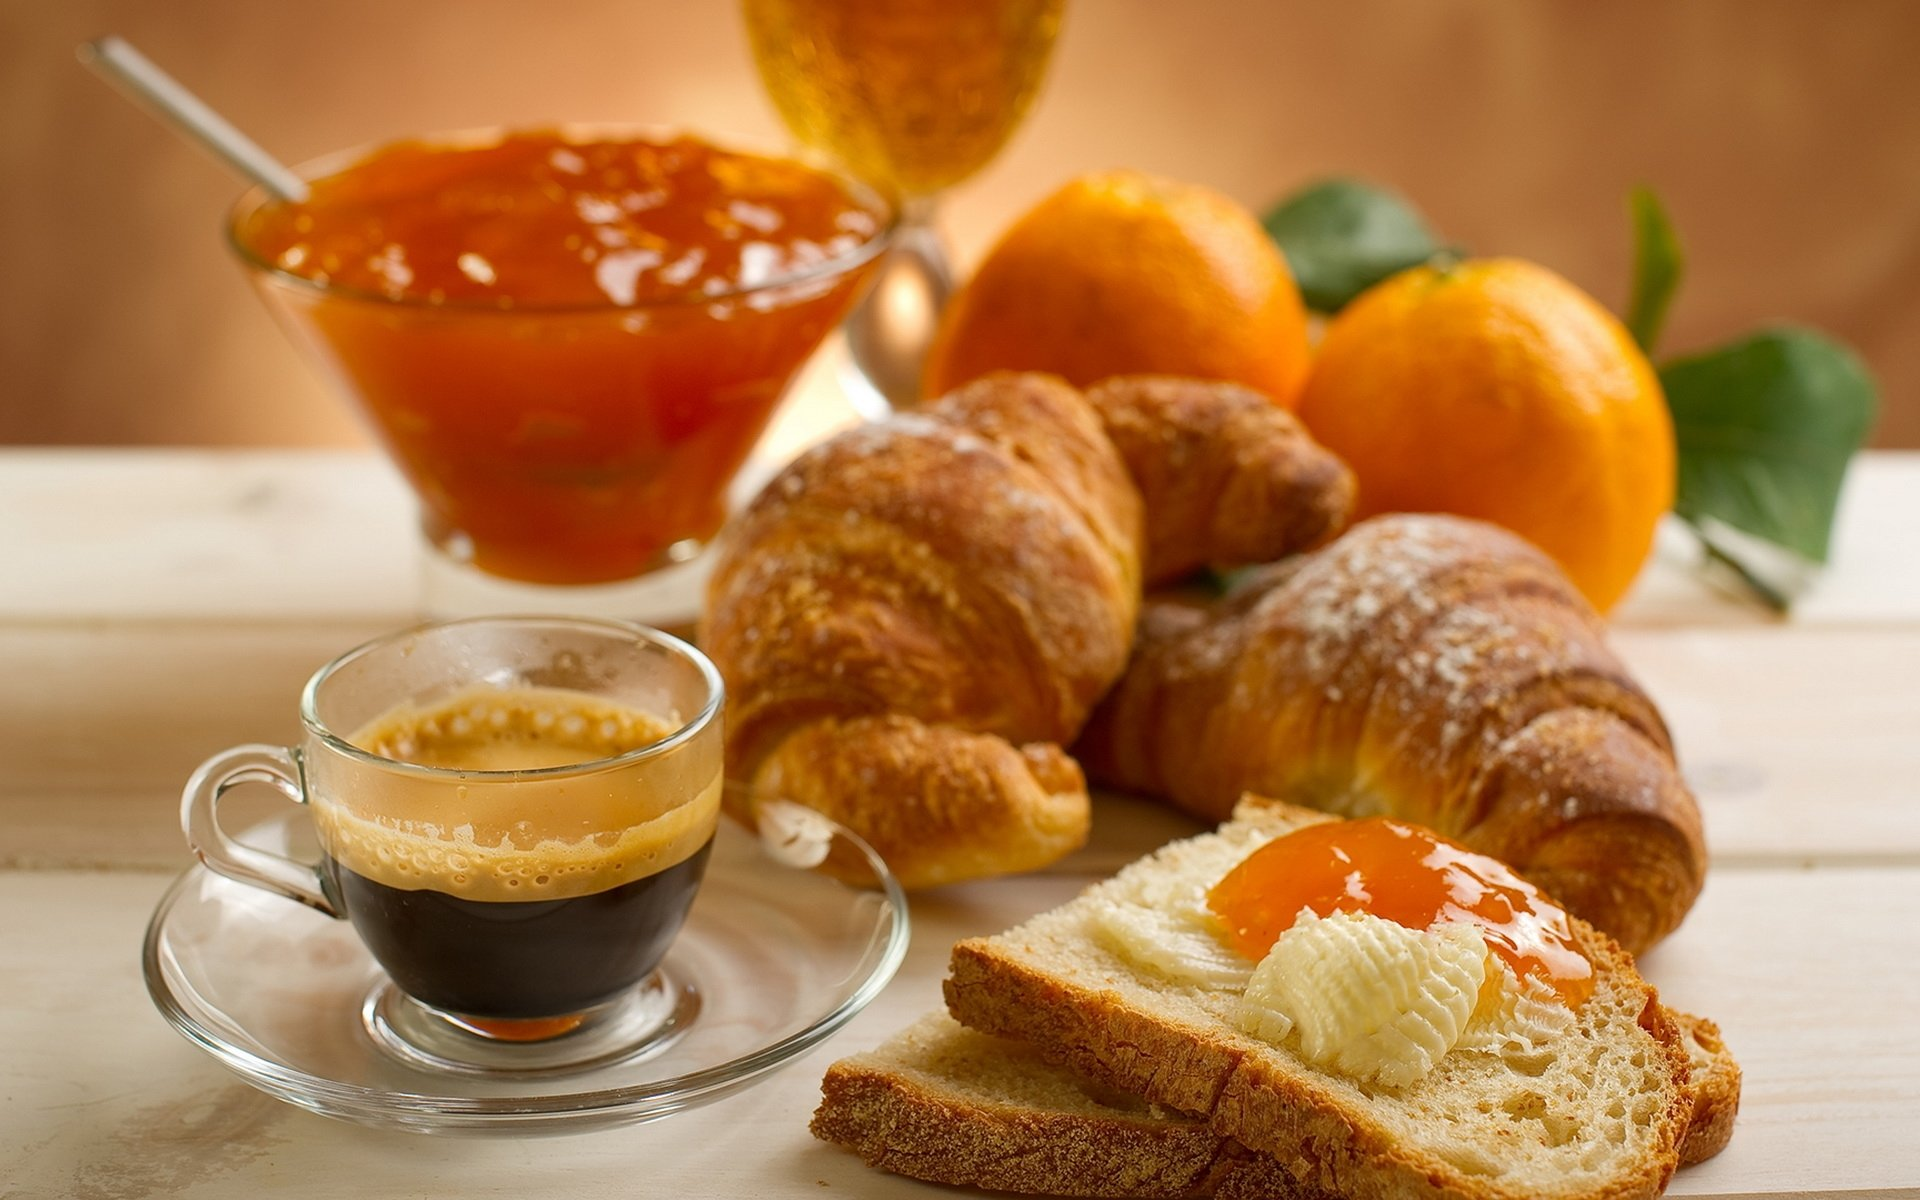 Best Breakfast wallpaper ID:234227 for High Resolution hd 1920x1200 computer